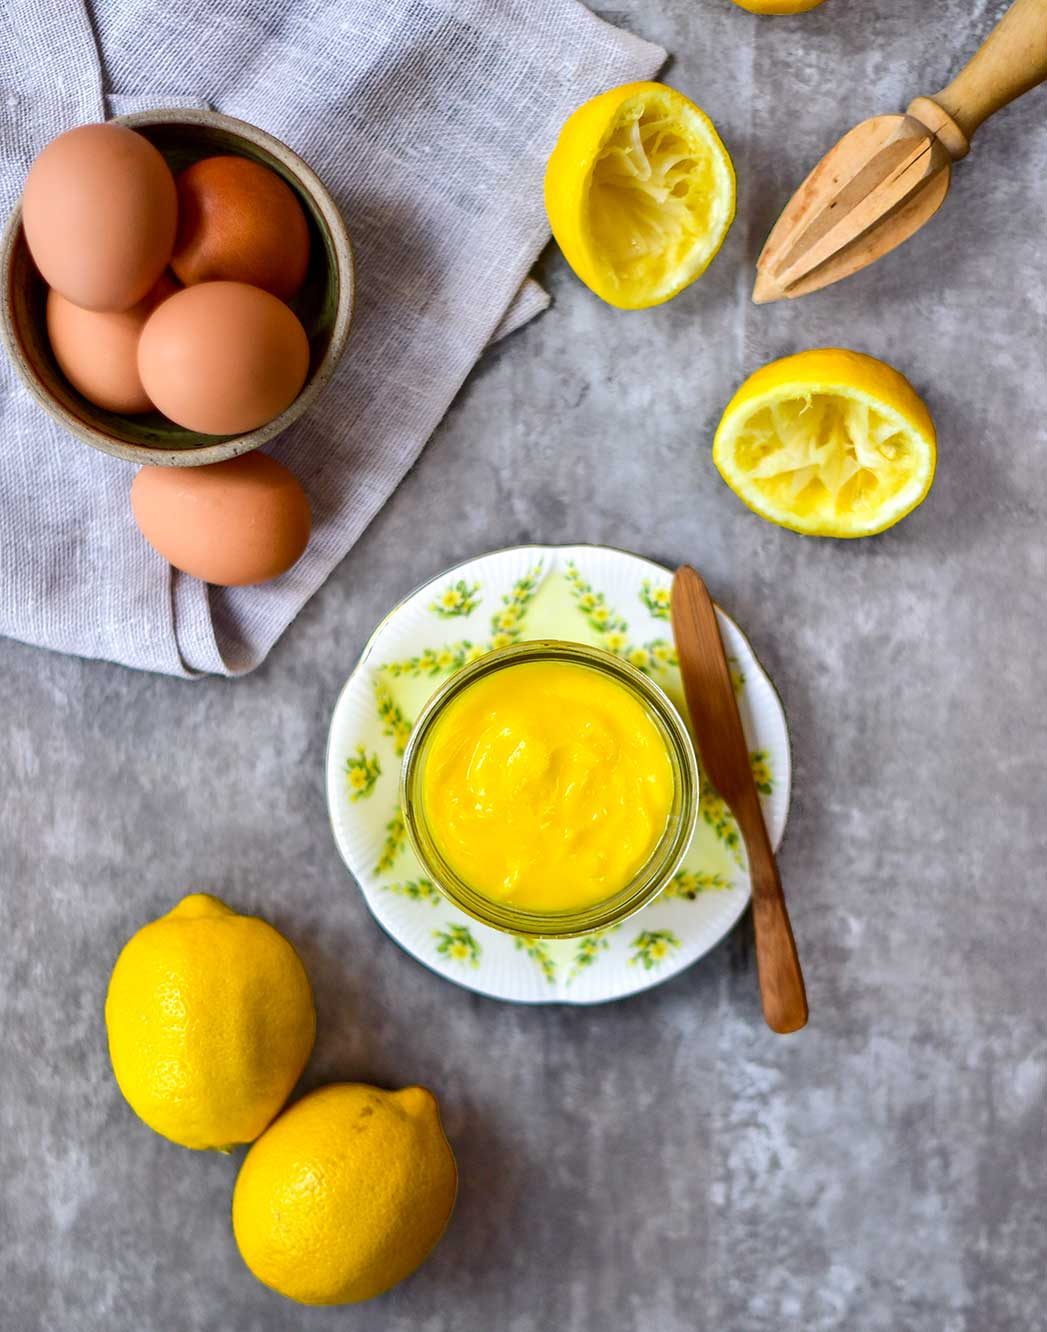 lemon curd with lemons and eggs on table